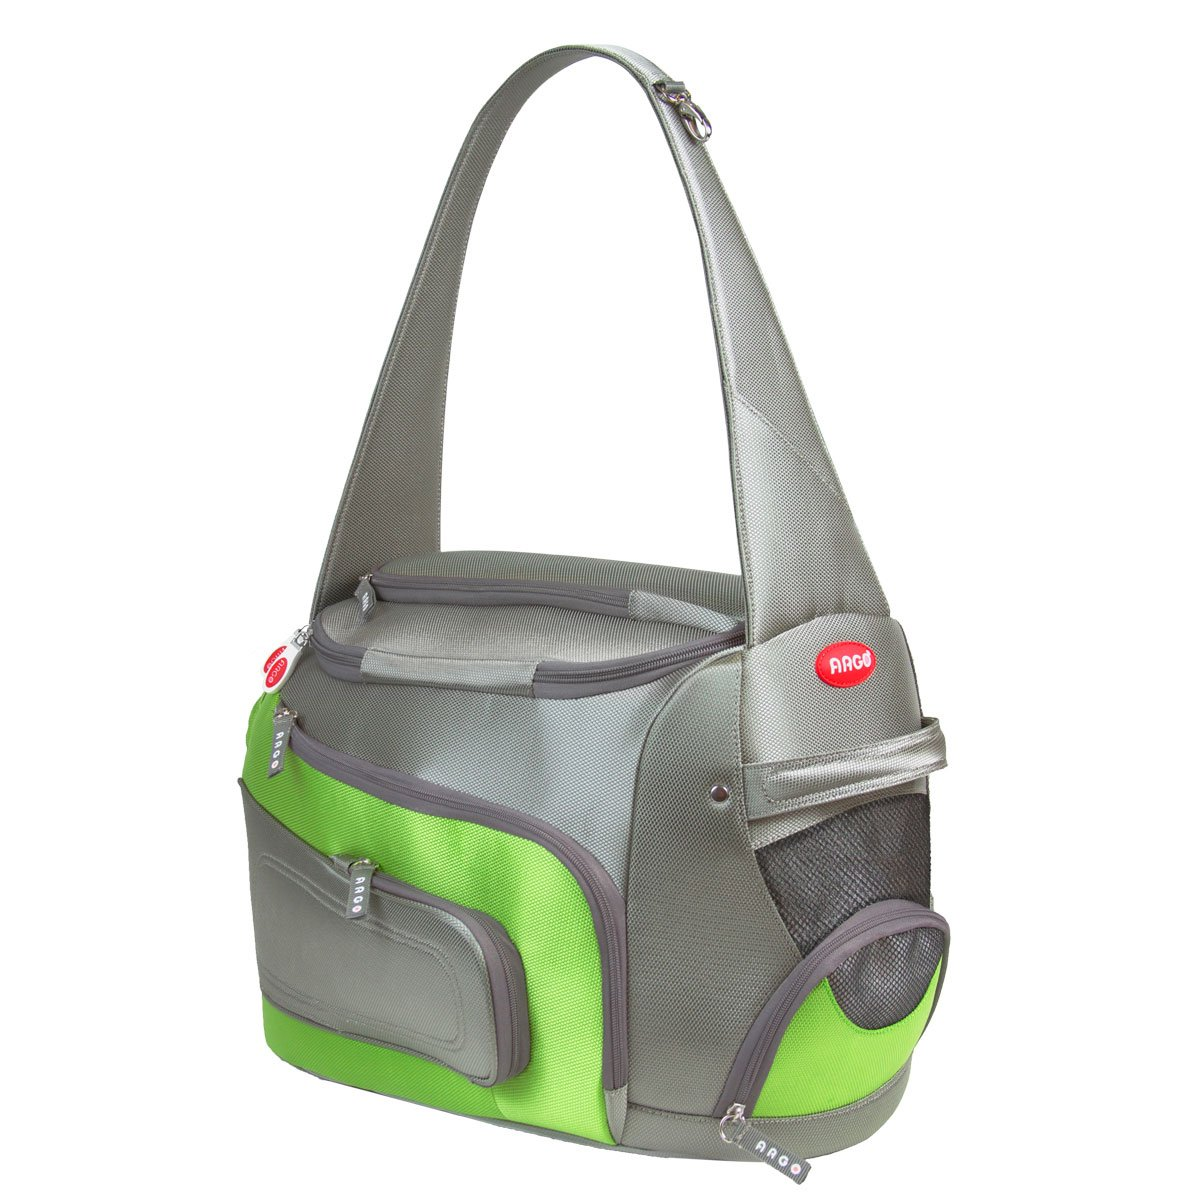 Argo By Teafco Duff-O Airline Approved (20'' Large) Pet Carrier - Kiwi Green